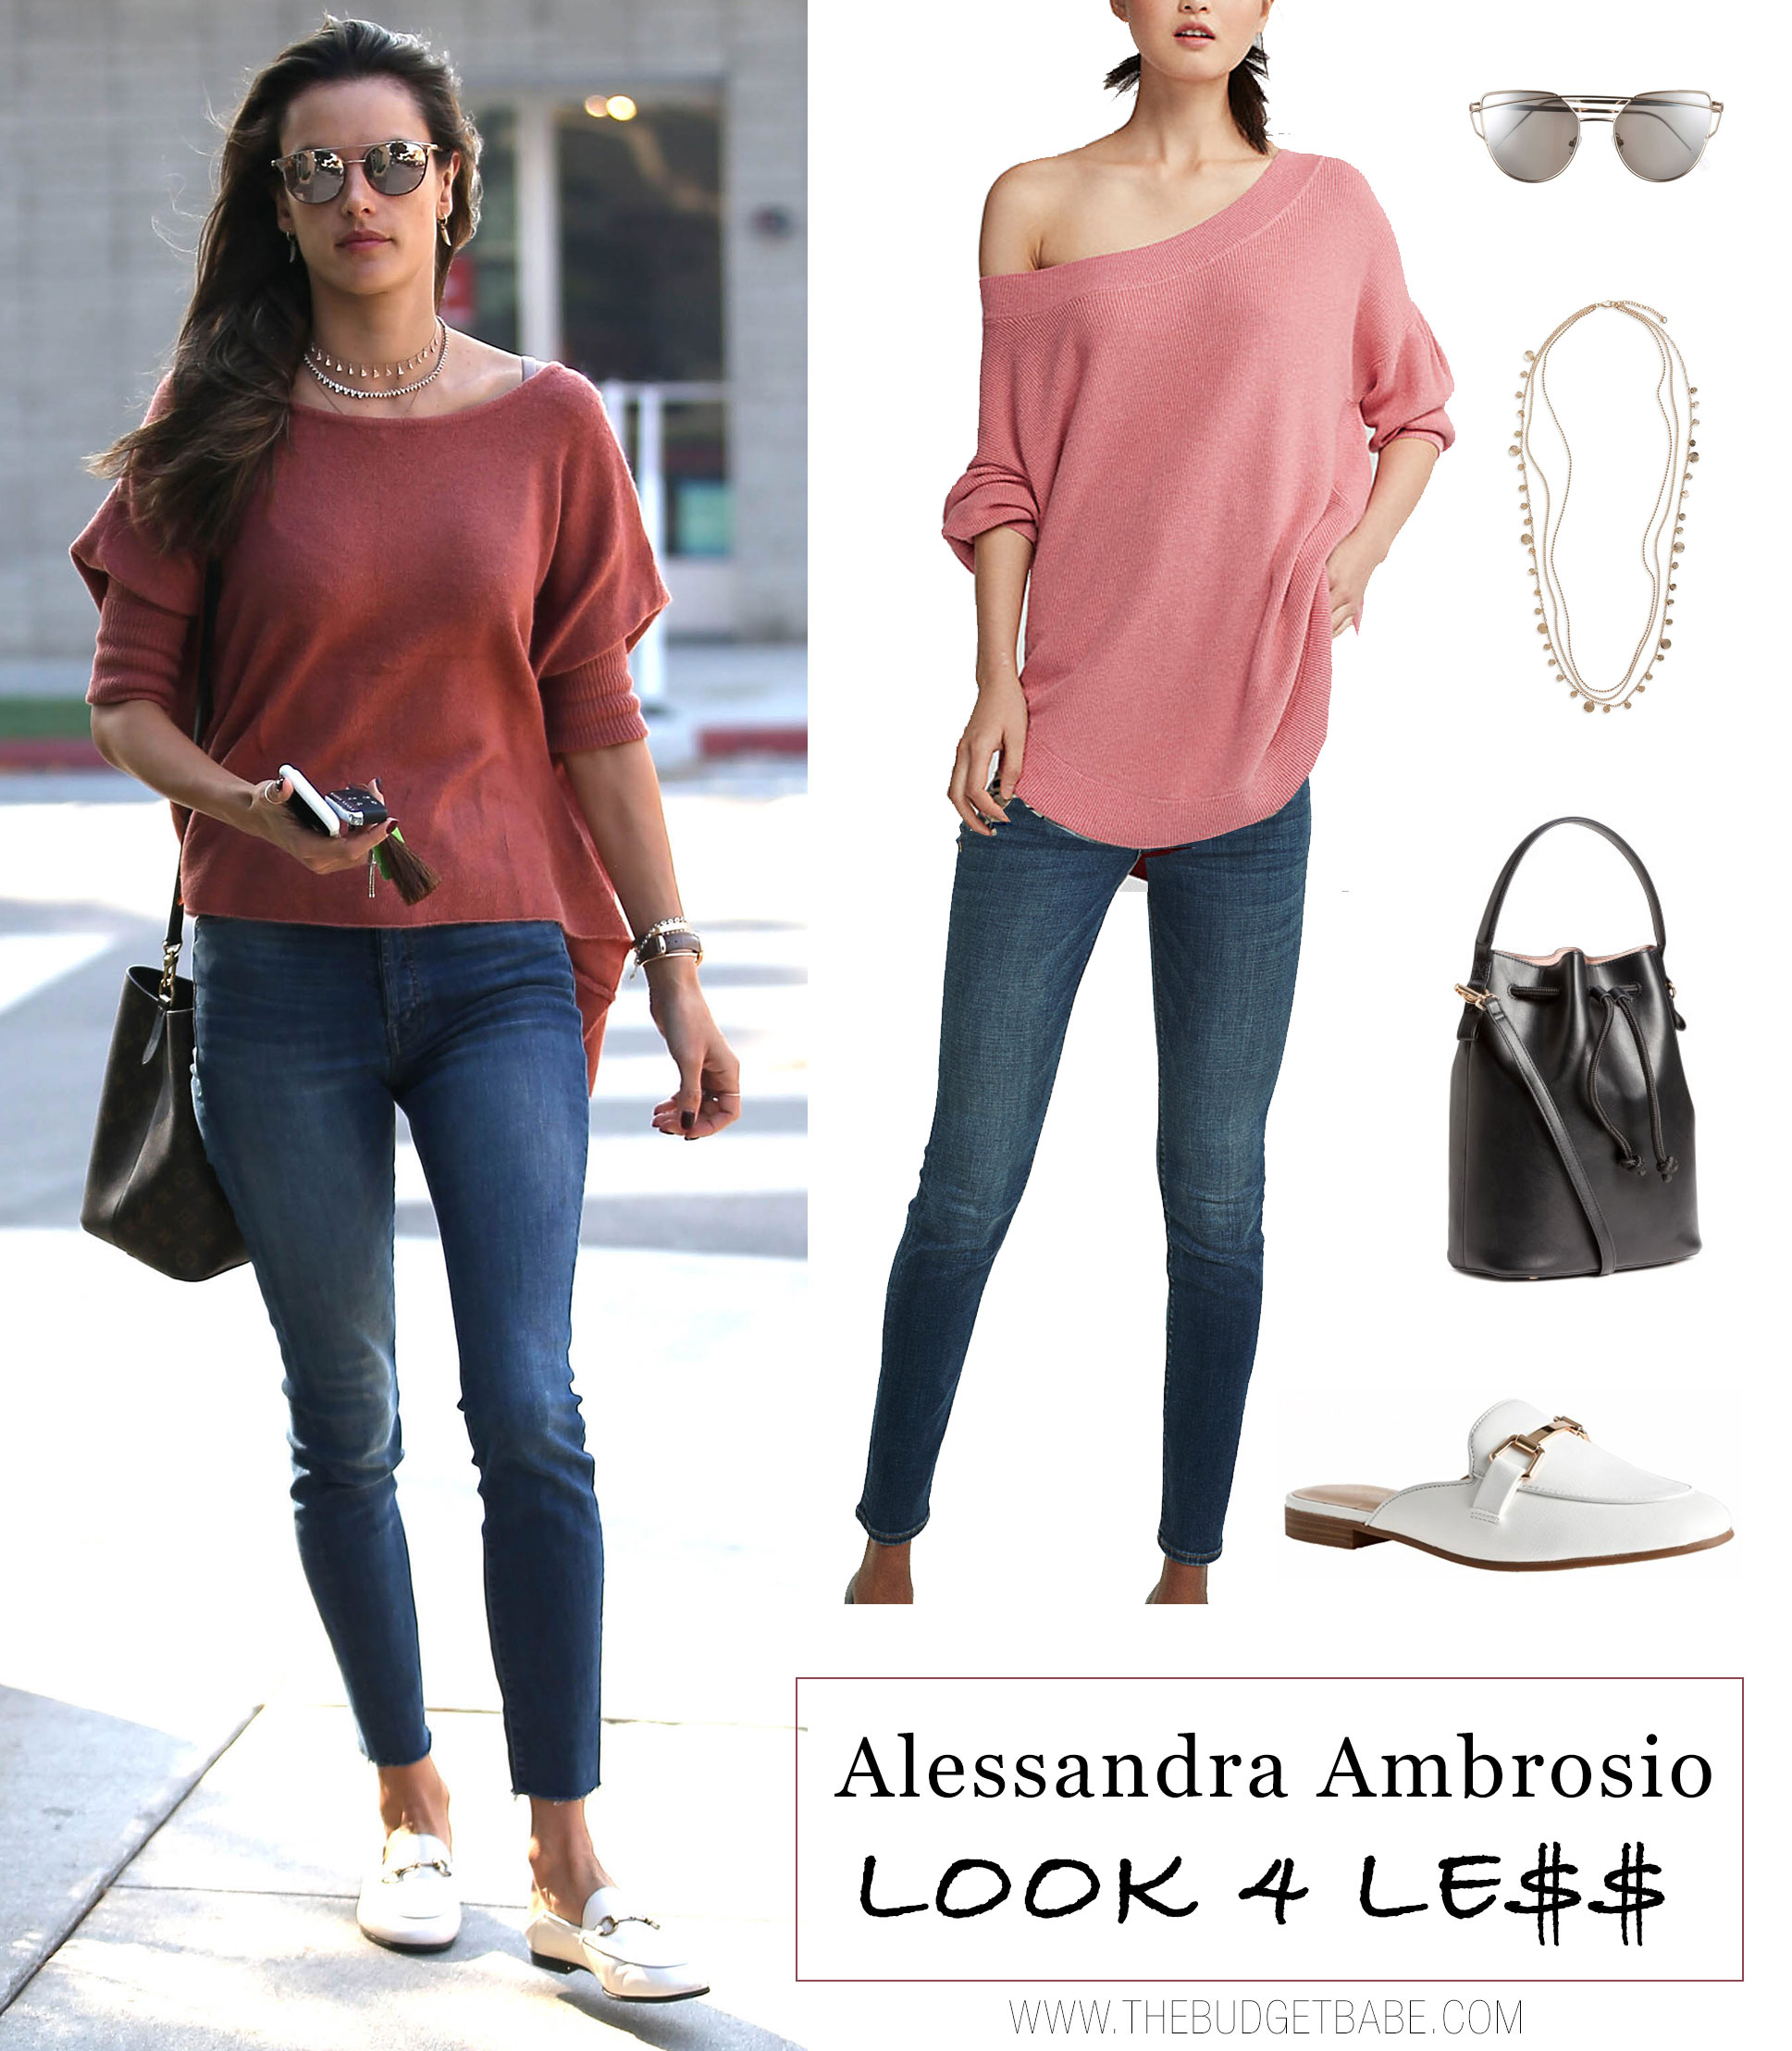 Alessandra Ambrosio wears a coral dolman sweater with skinny jeans and white mules.